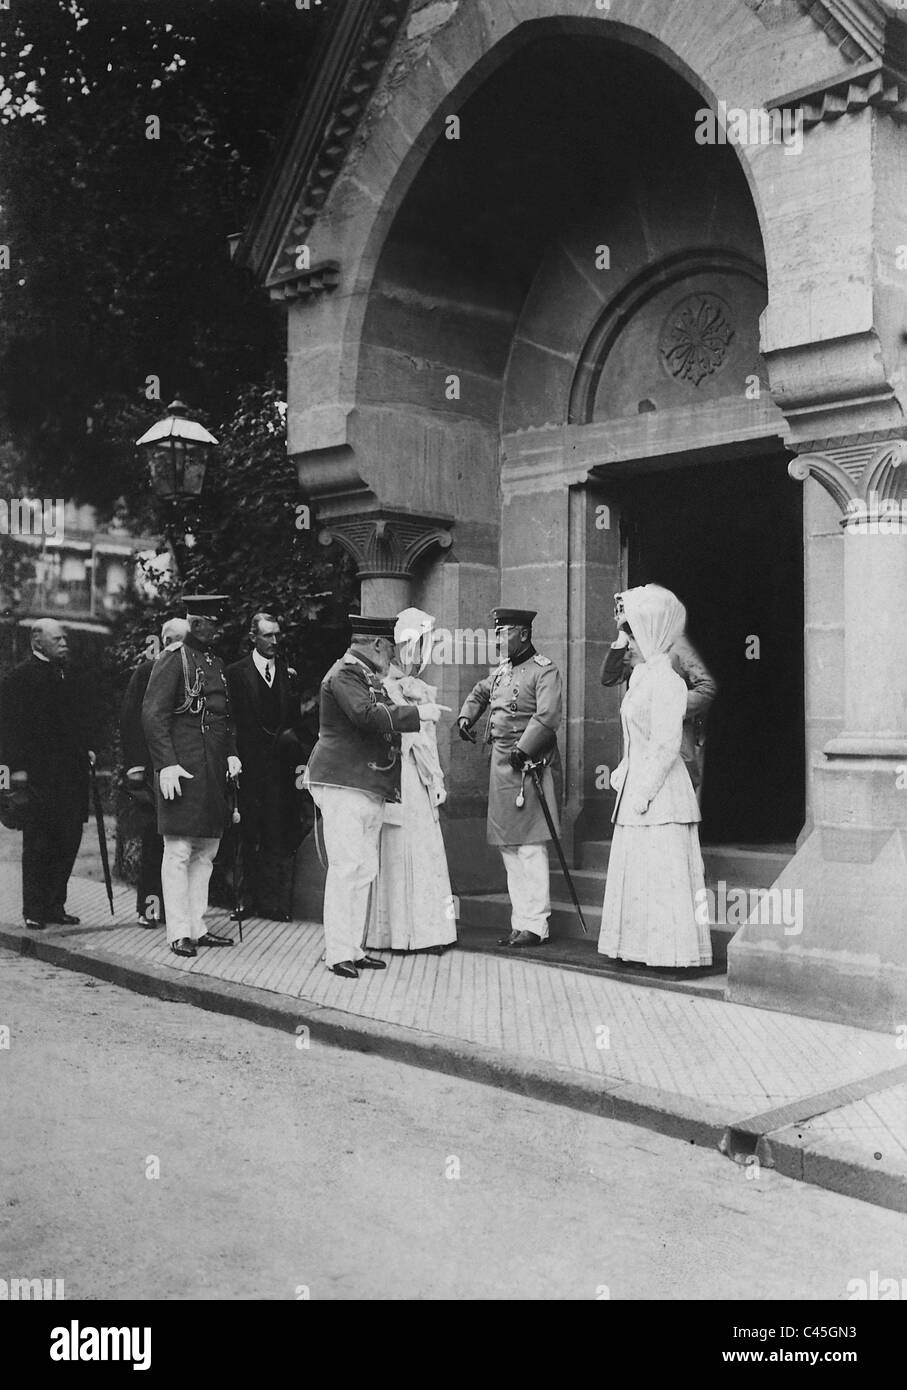 Wilhelm II. and Edward VII. in front of the English church in Bad Homburg, 1908 - Stock Image